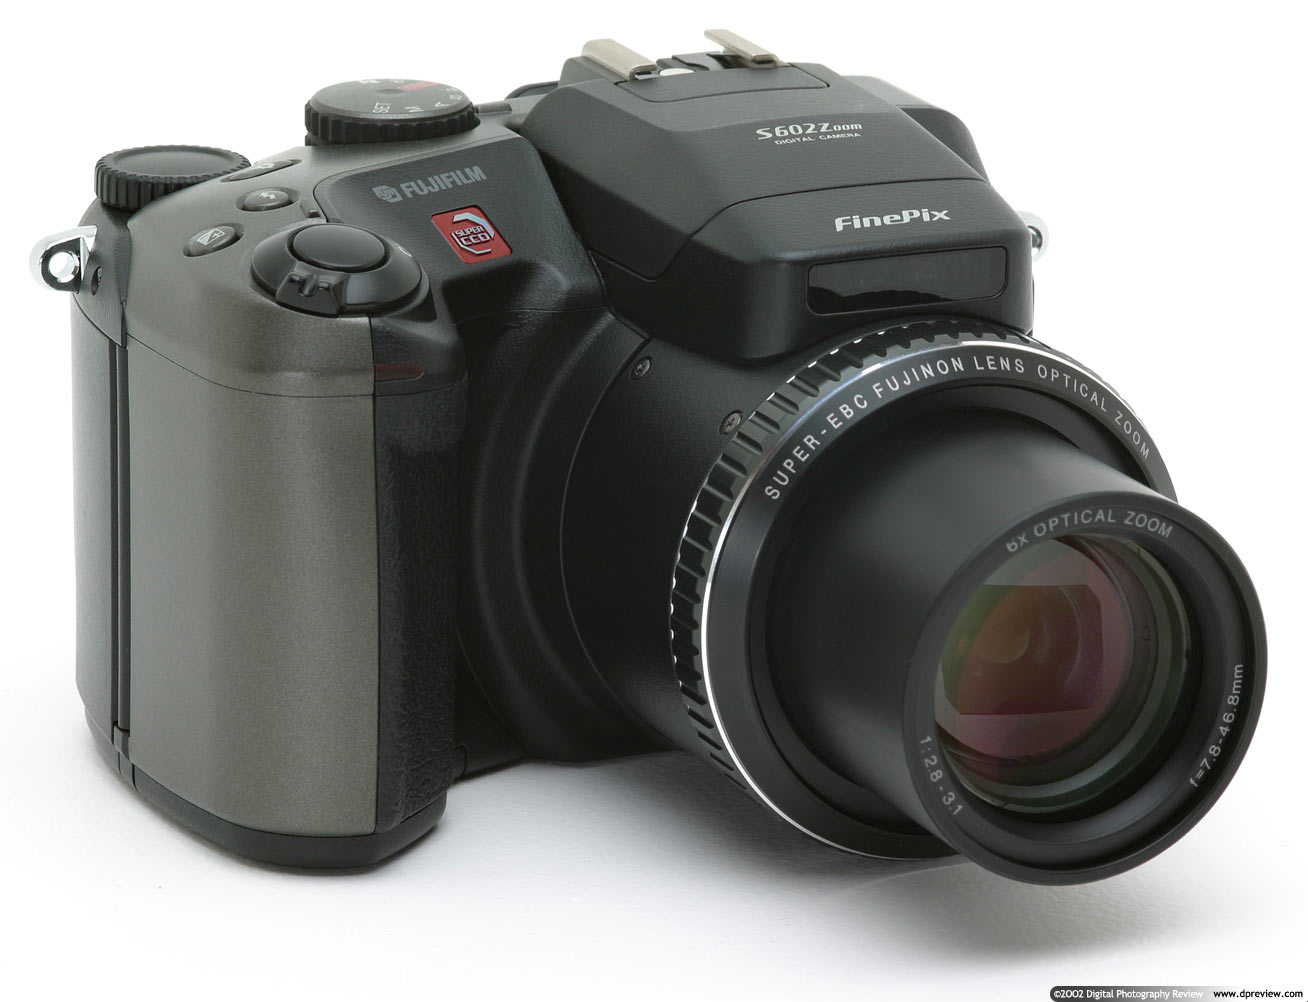 fujifilm finepix s602 zoom review digital photography review